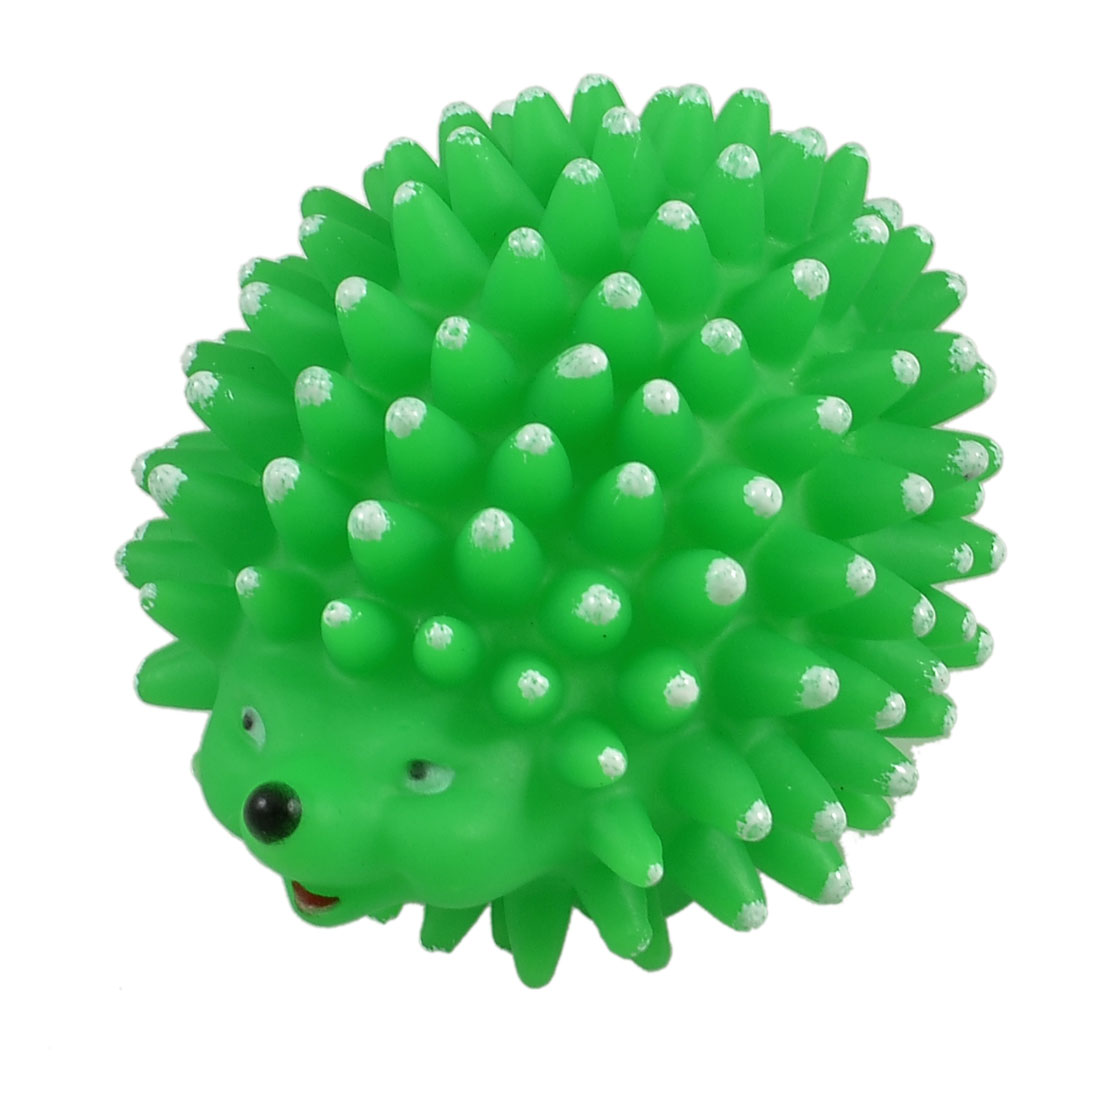 Green Vinyl Rubber Hedgehog Shaped Squeaky Chew Toy for Pet Dog